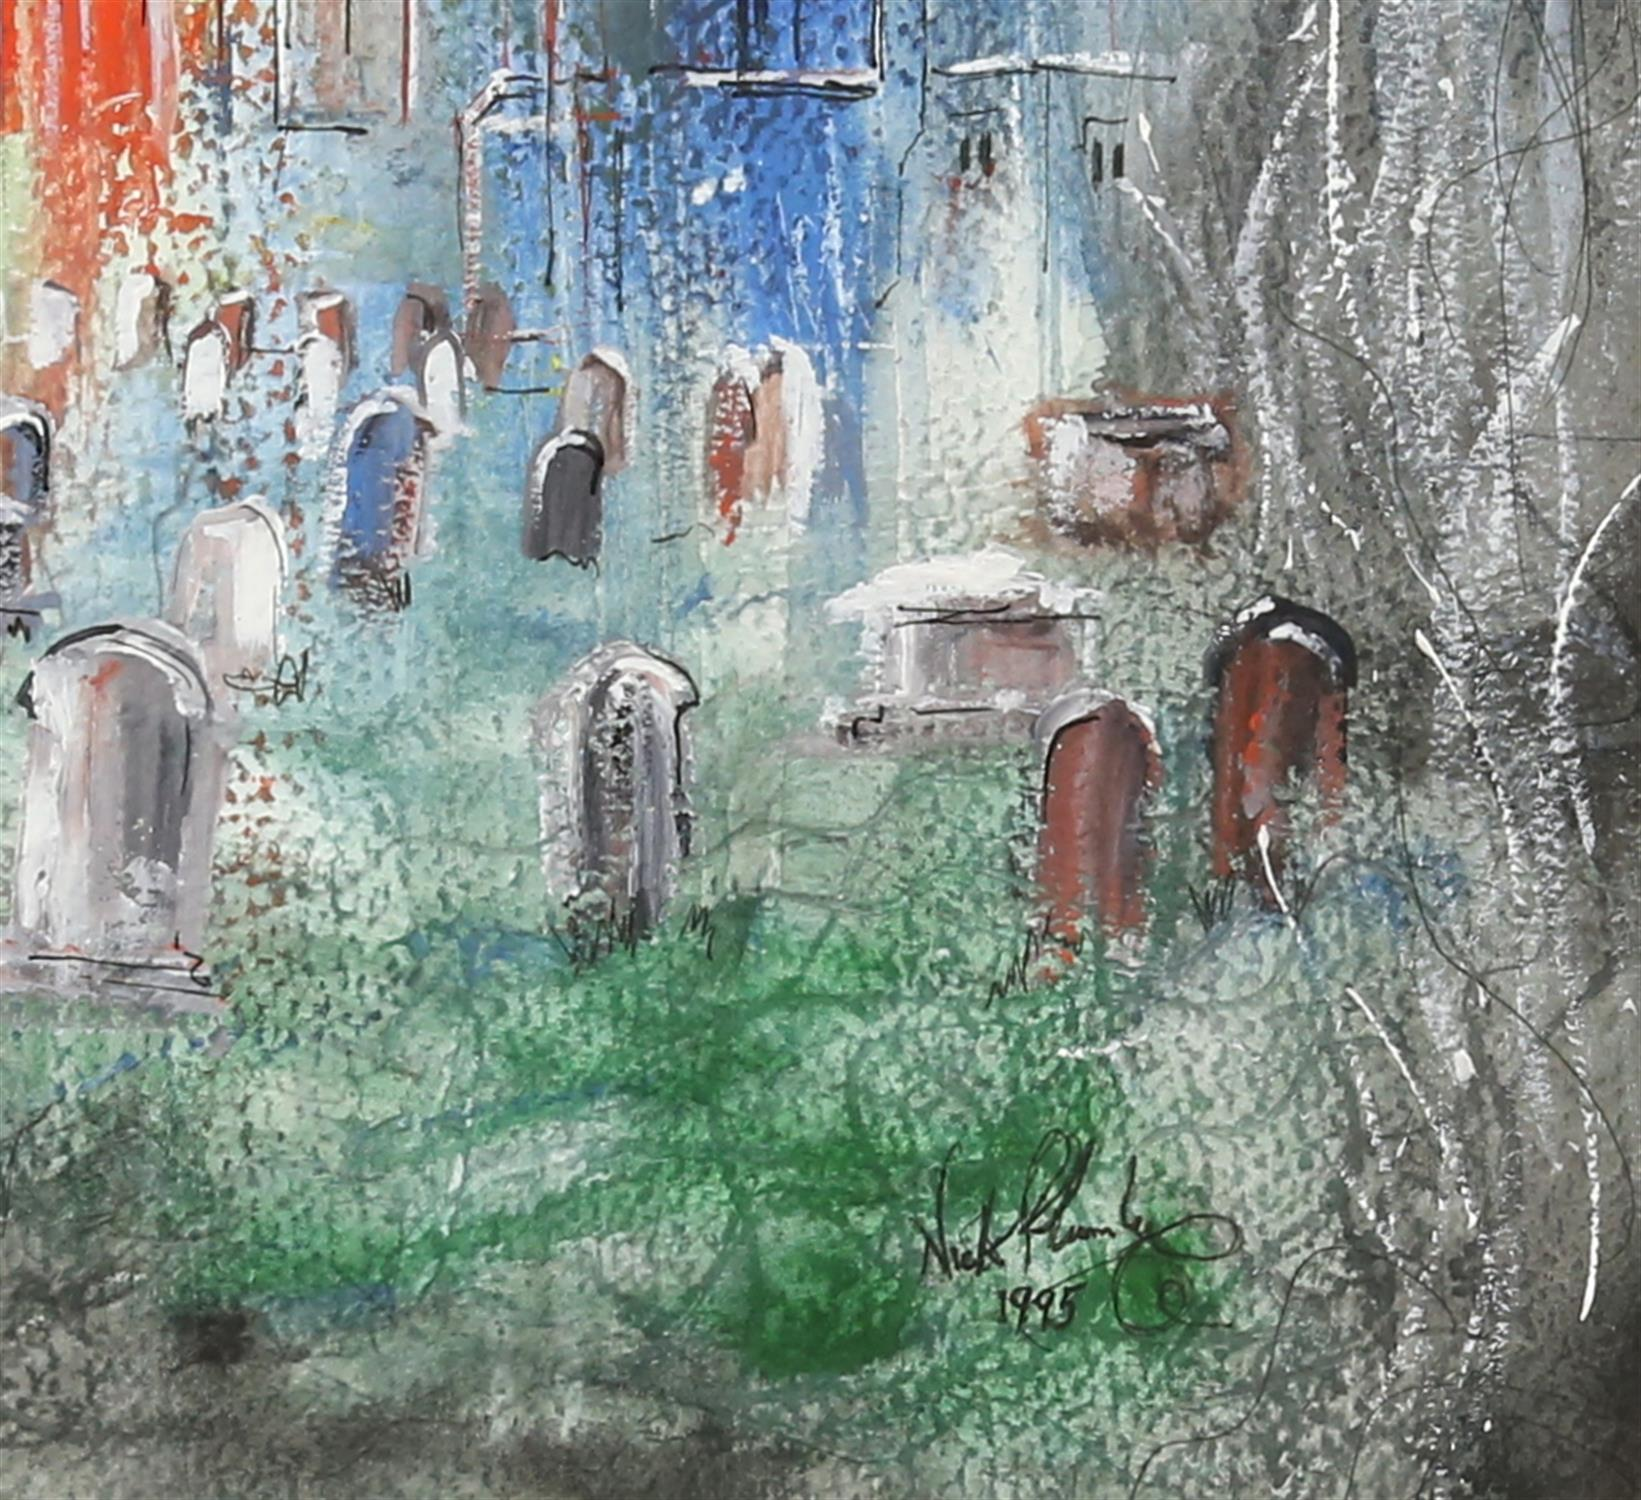 Nick Plumley (British, b. 1940), church yard scene, signed and dated 1995, gouache, 44cm x 33cm, - Image 3 of 4